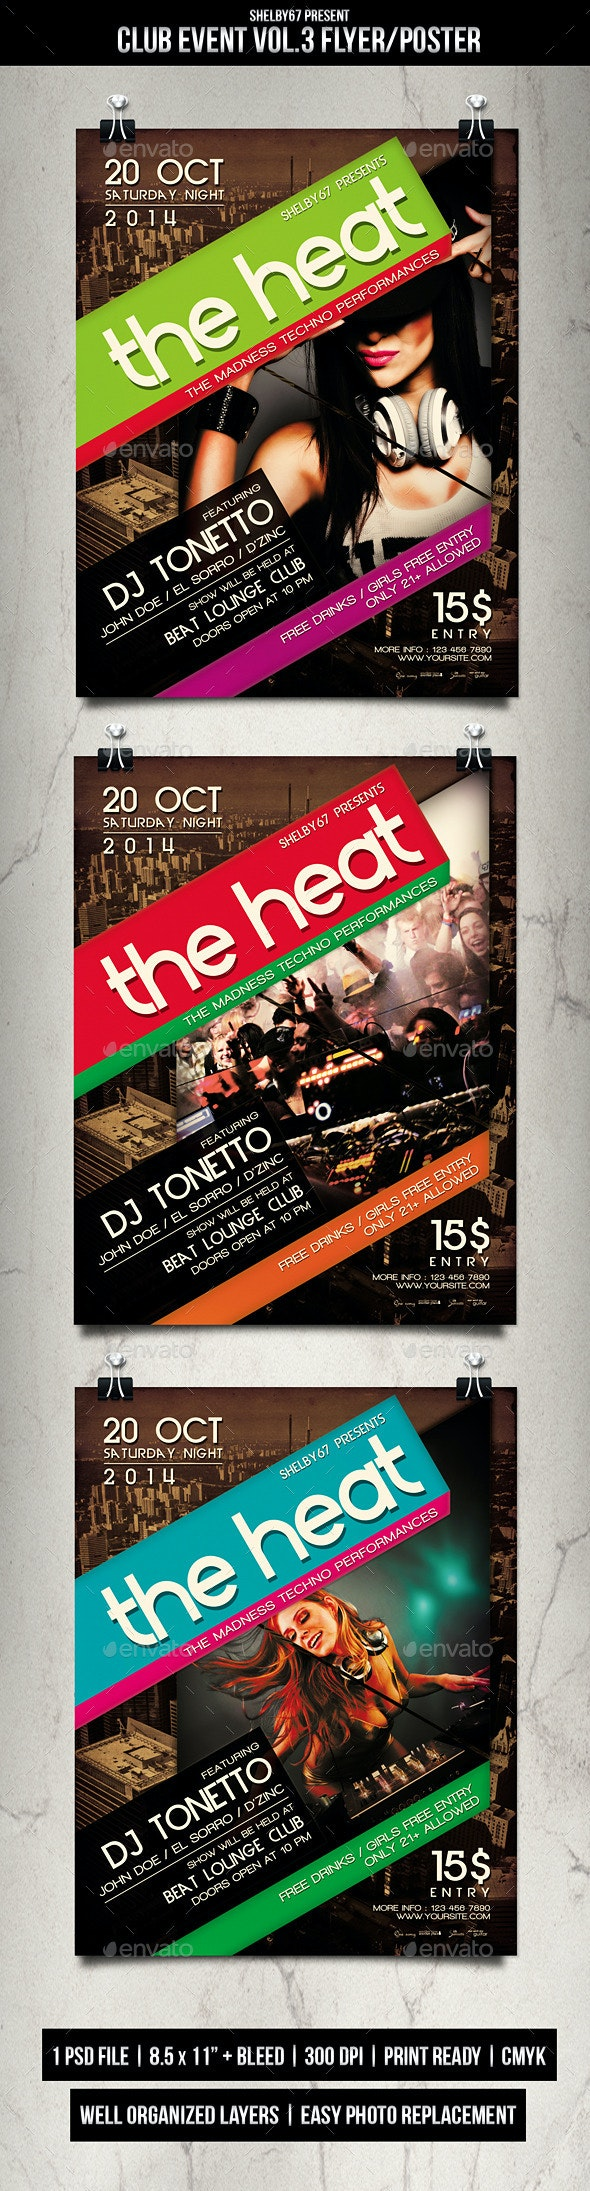 Club Event Flyer / Poster Vol.3 - Clubs & Parties Events